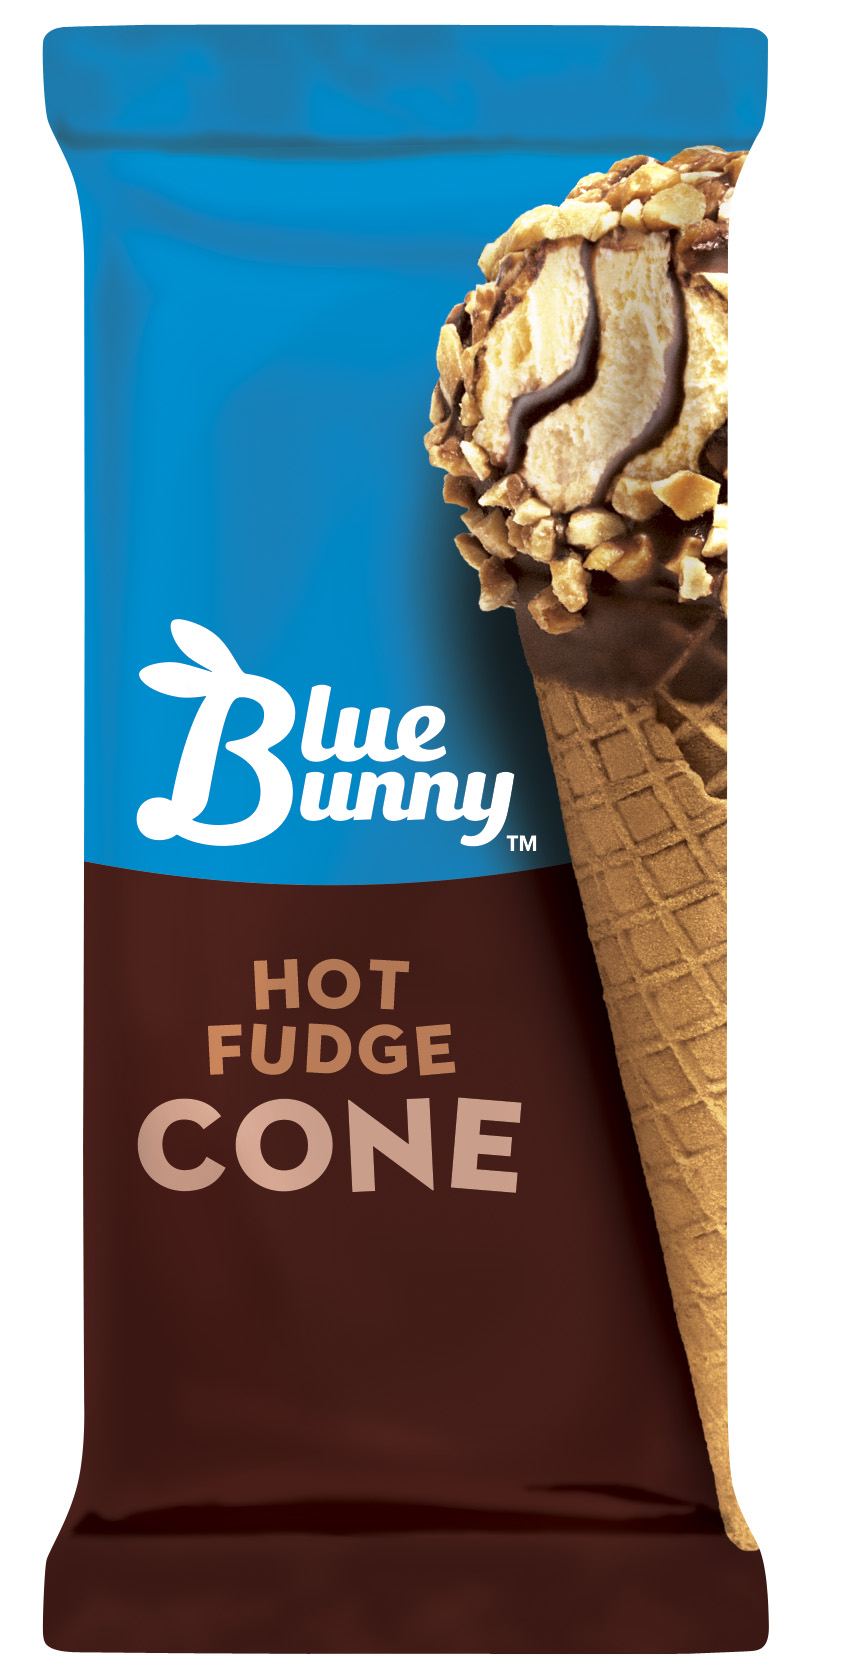 Hot Fudge Cone 4.6oz